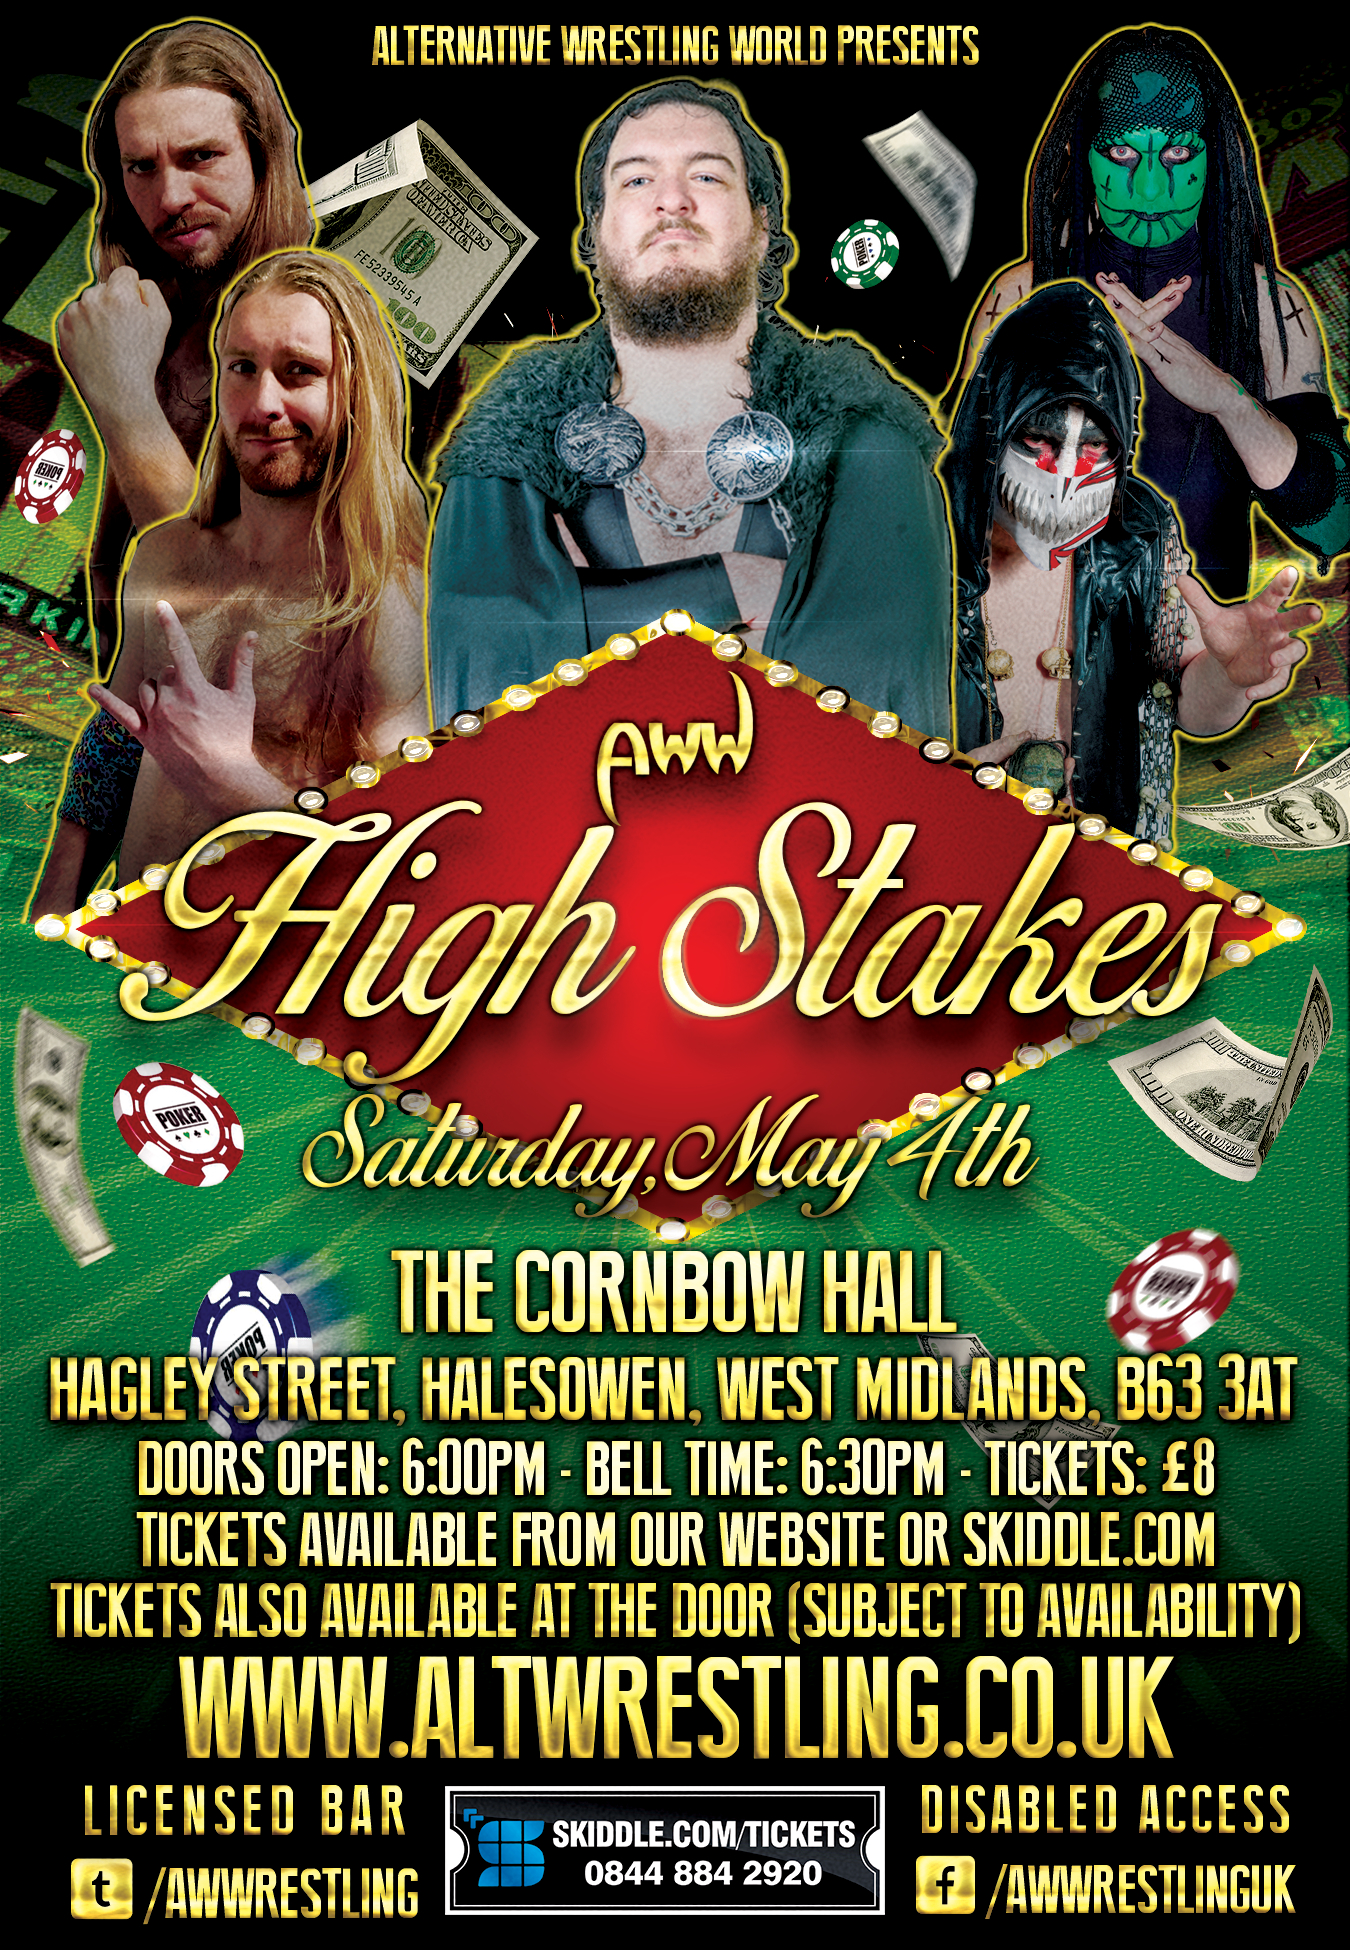 AWW Wrestling - High Stakes